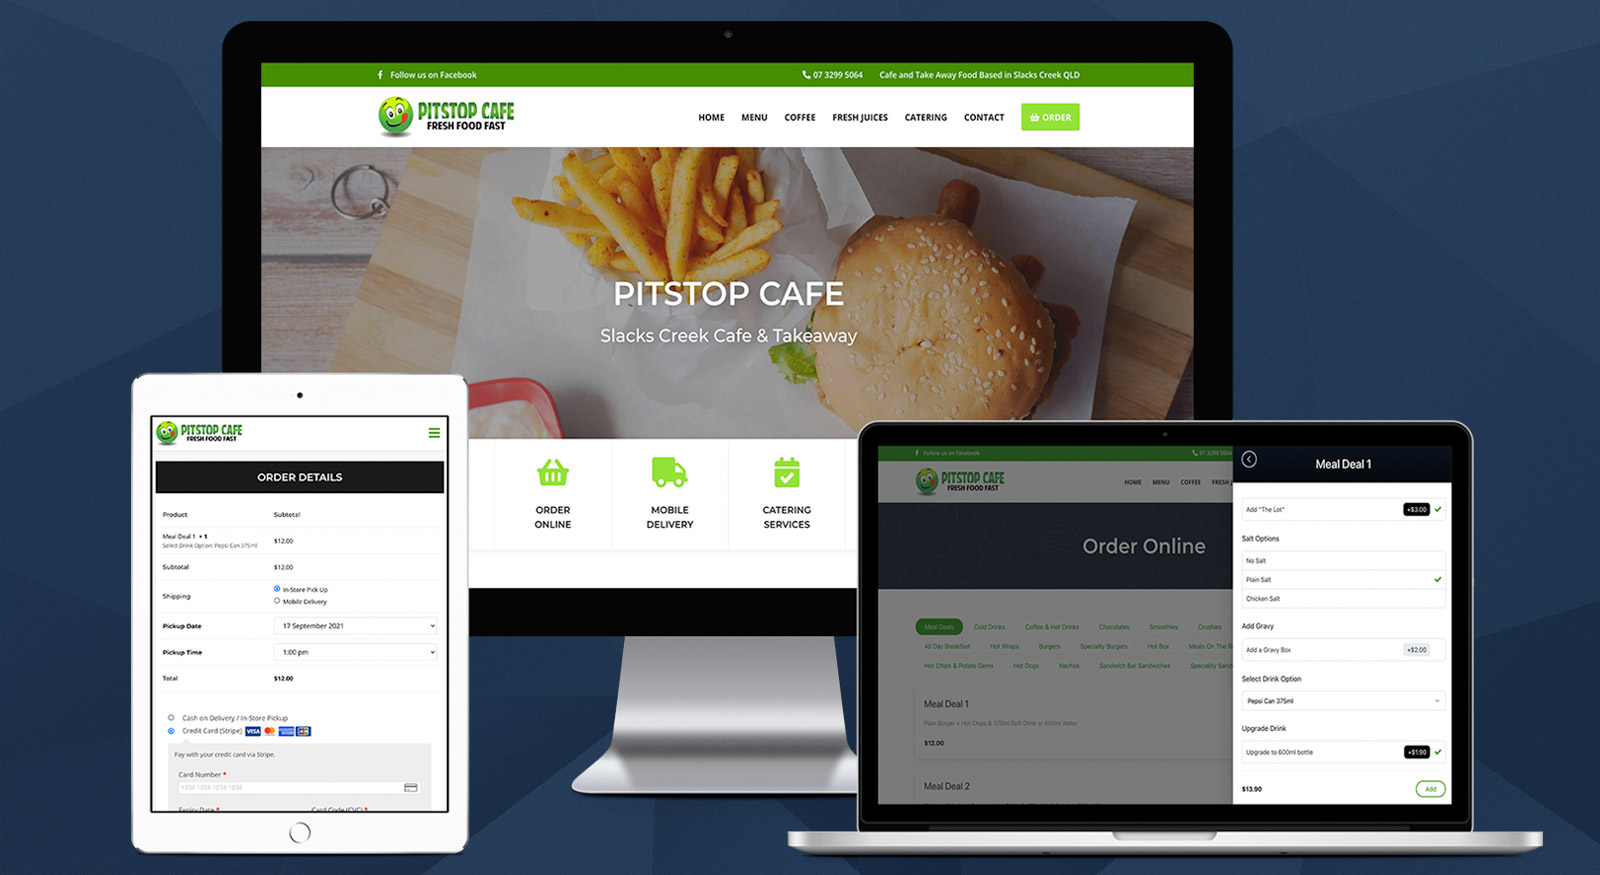 Website Launch - Pitstop Cafe